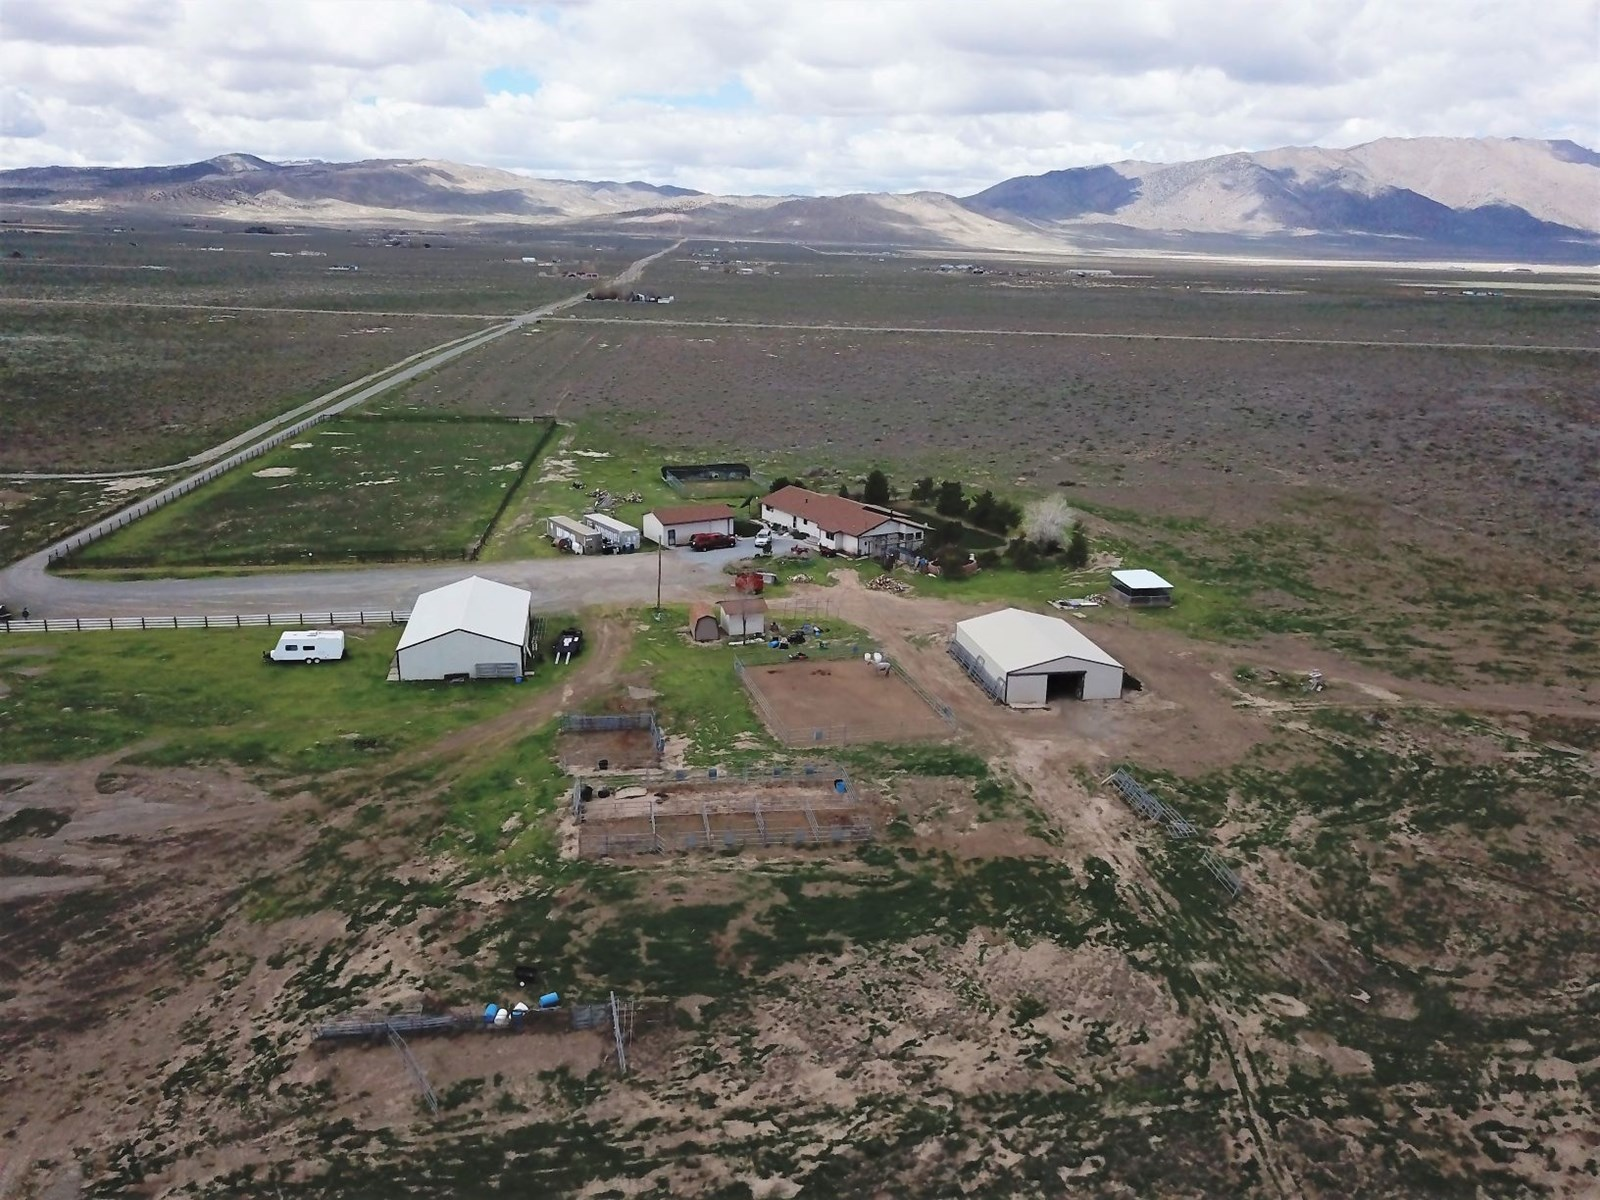 Country Home Horse Property / Ranch For Sale Reno, Nevada